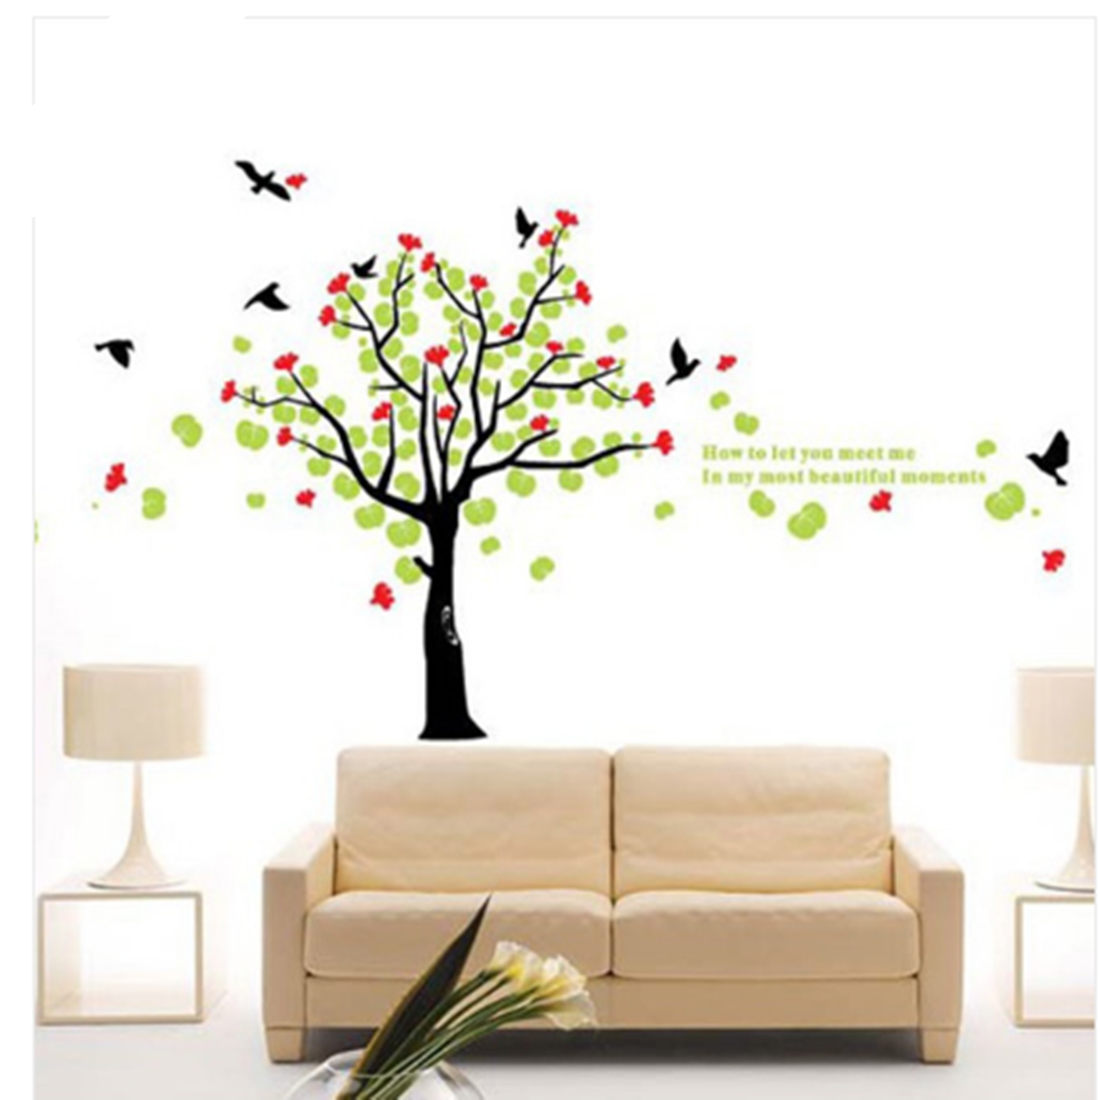 Vinyl Home Room Decor Art Quote Wall Decal Stickers Bedroom Removable Mural Diy Ebay